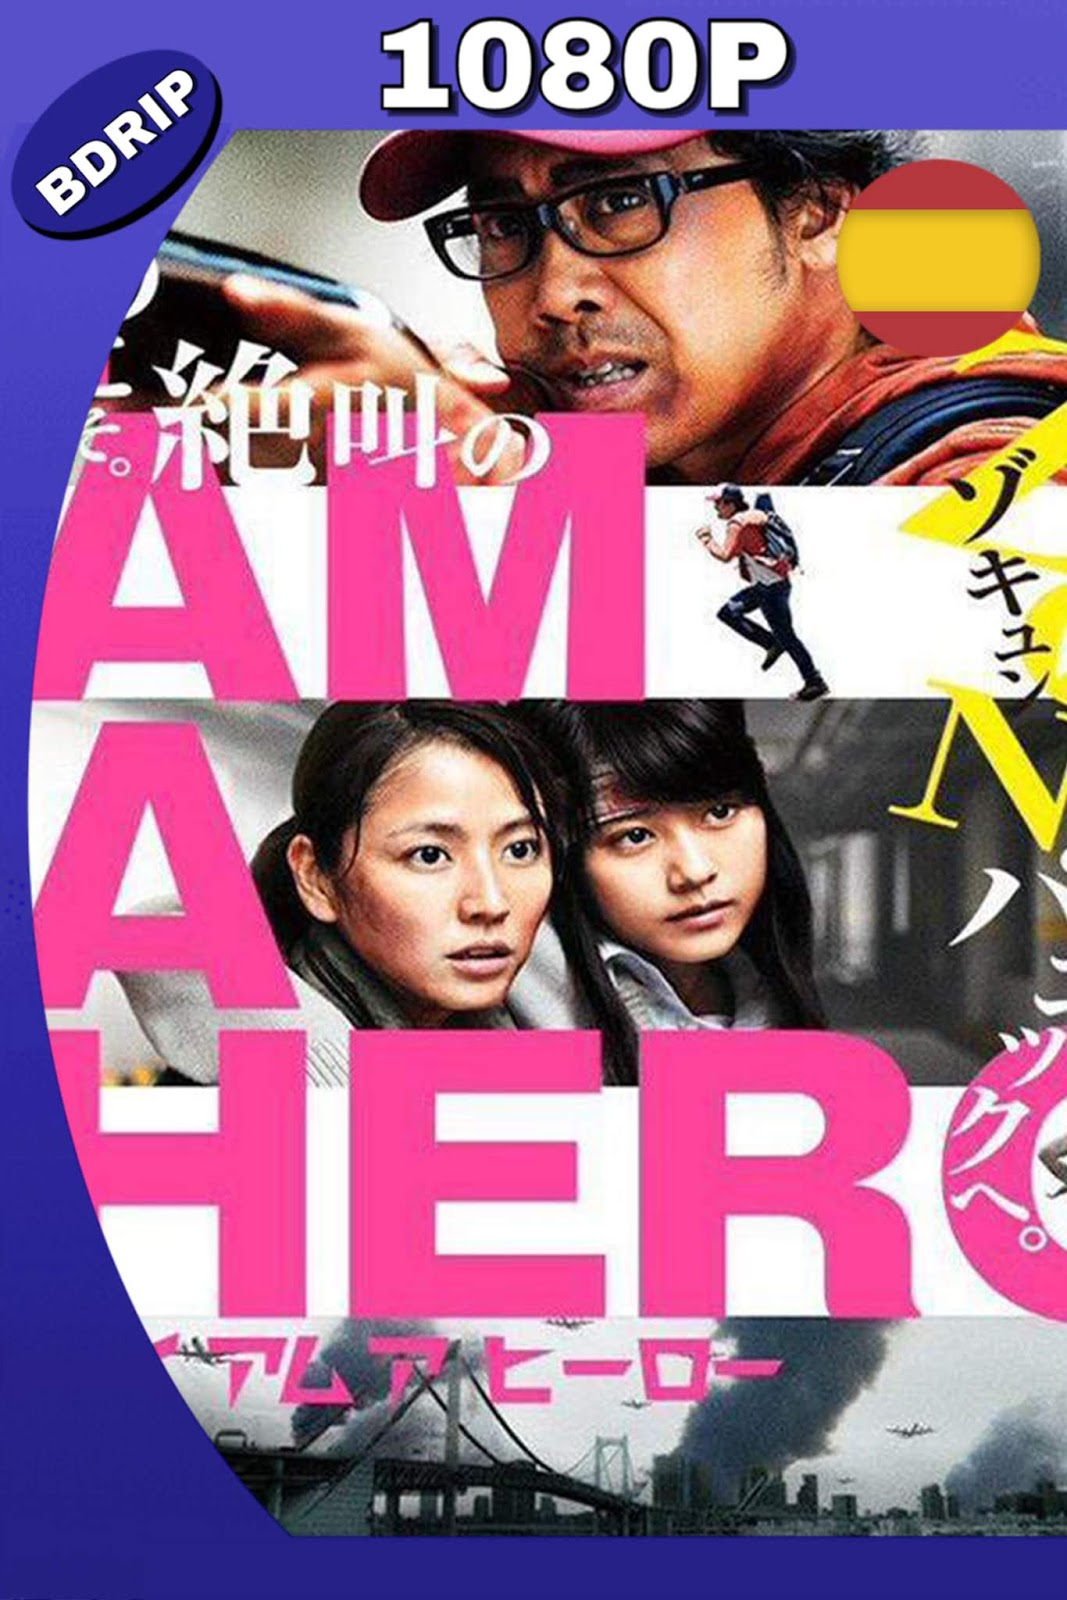 I AM A HERO 2015 HD BDRIP 1080P 13GB.mkv